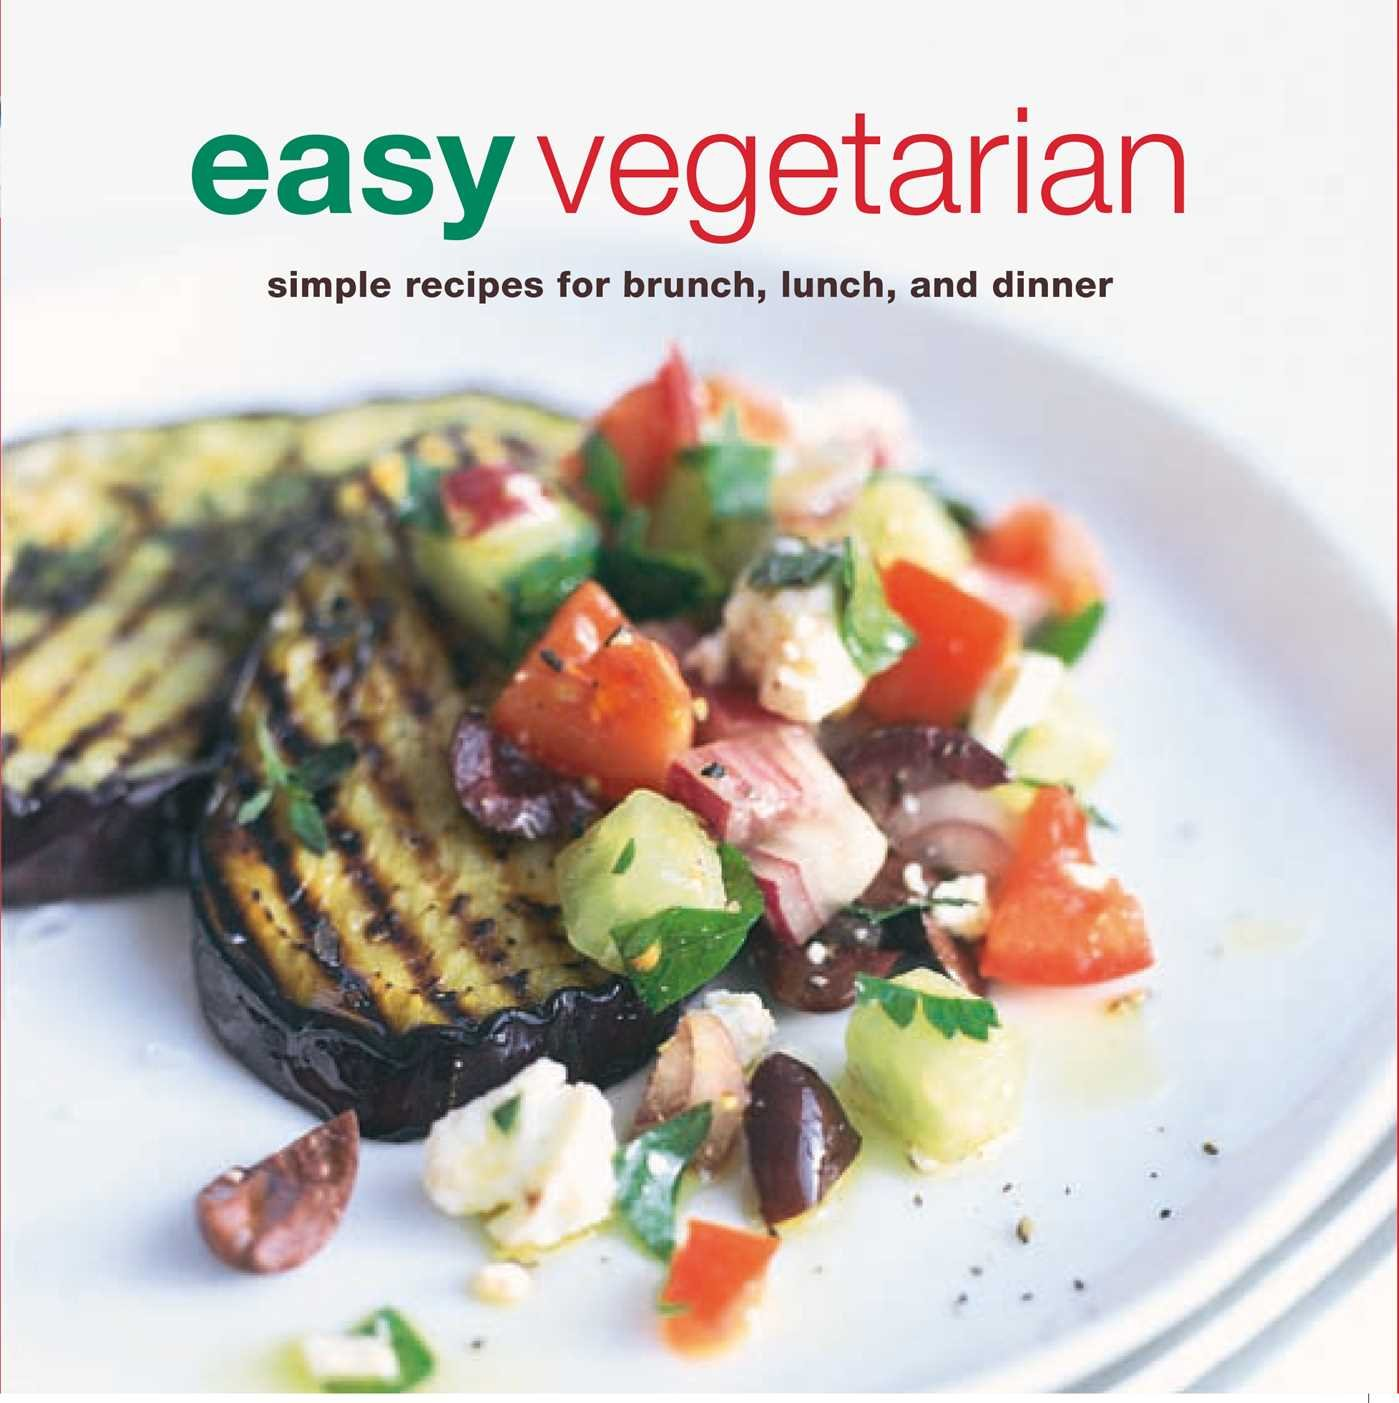 Easy vegetarian simple recipes for brunch lunch and dinner easy vegetarian simple recipes for brunch lunch and dinner ryland peters small 9781845974930 amazon books forumfinder Images